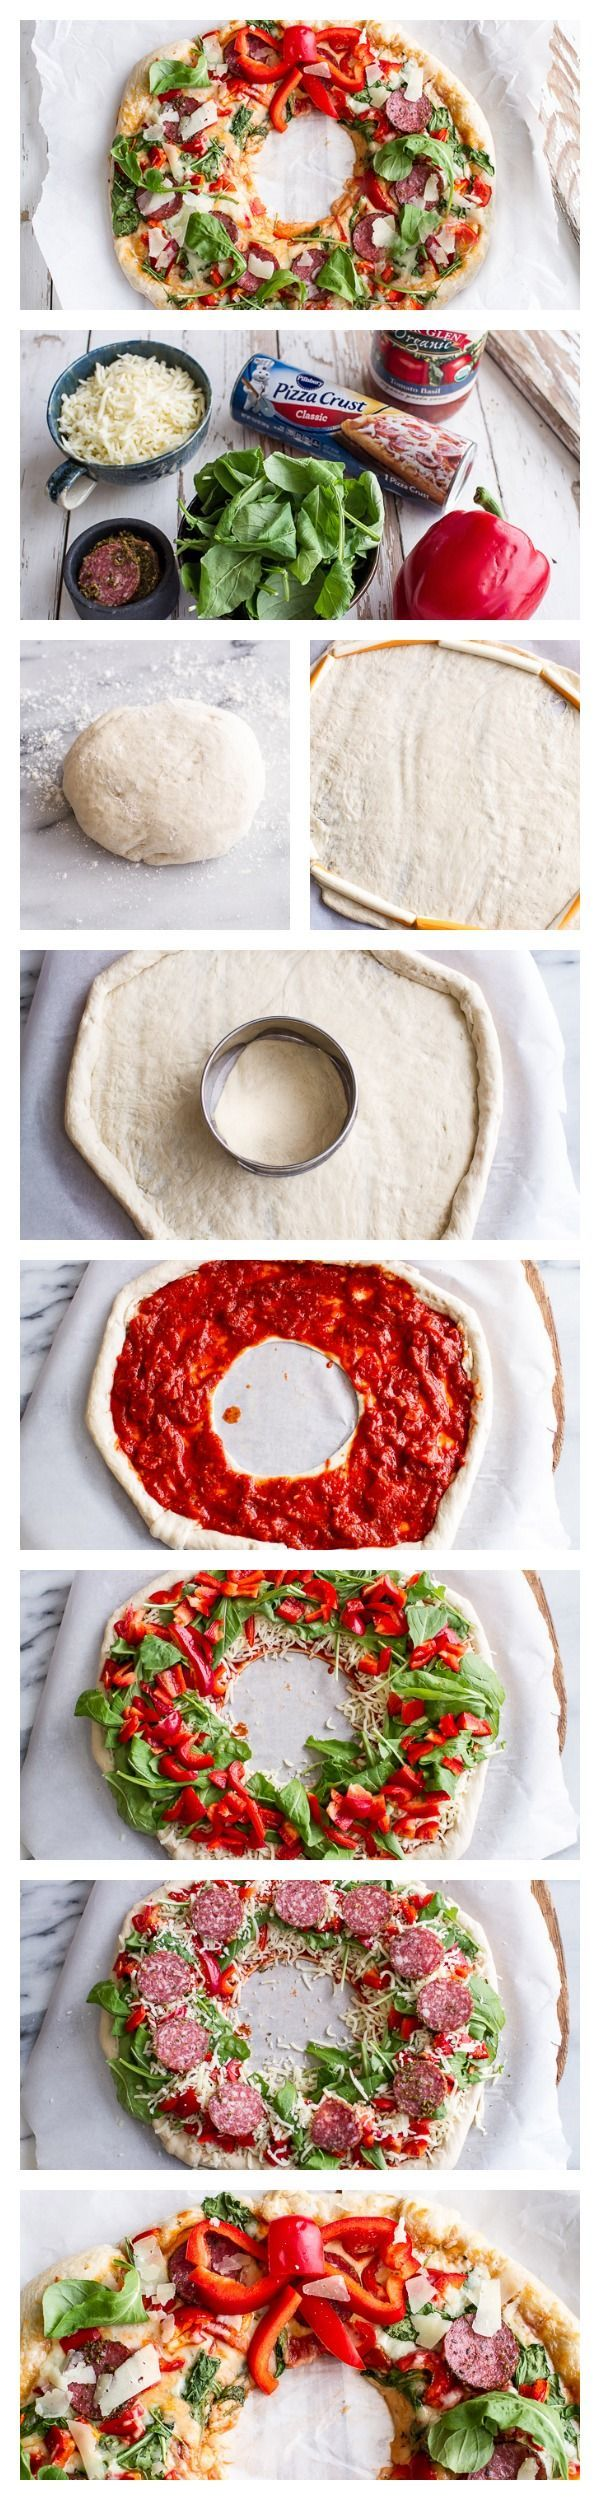 Pizza Wreath // easy to customize with your favorite toppings and crust, you can even make mini wreaths for individual servings